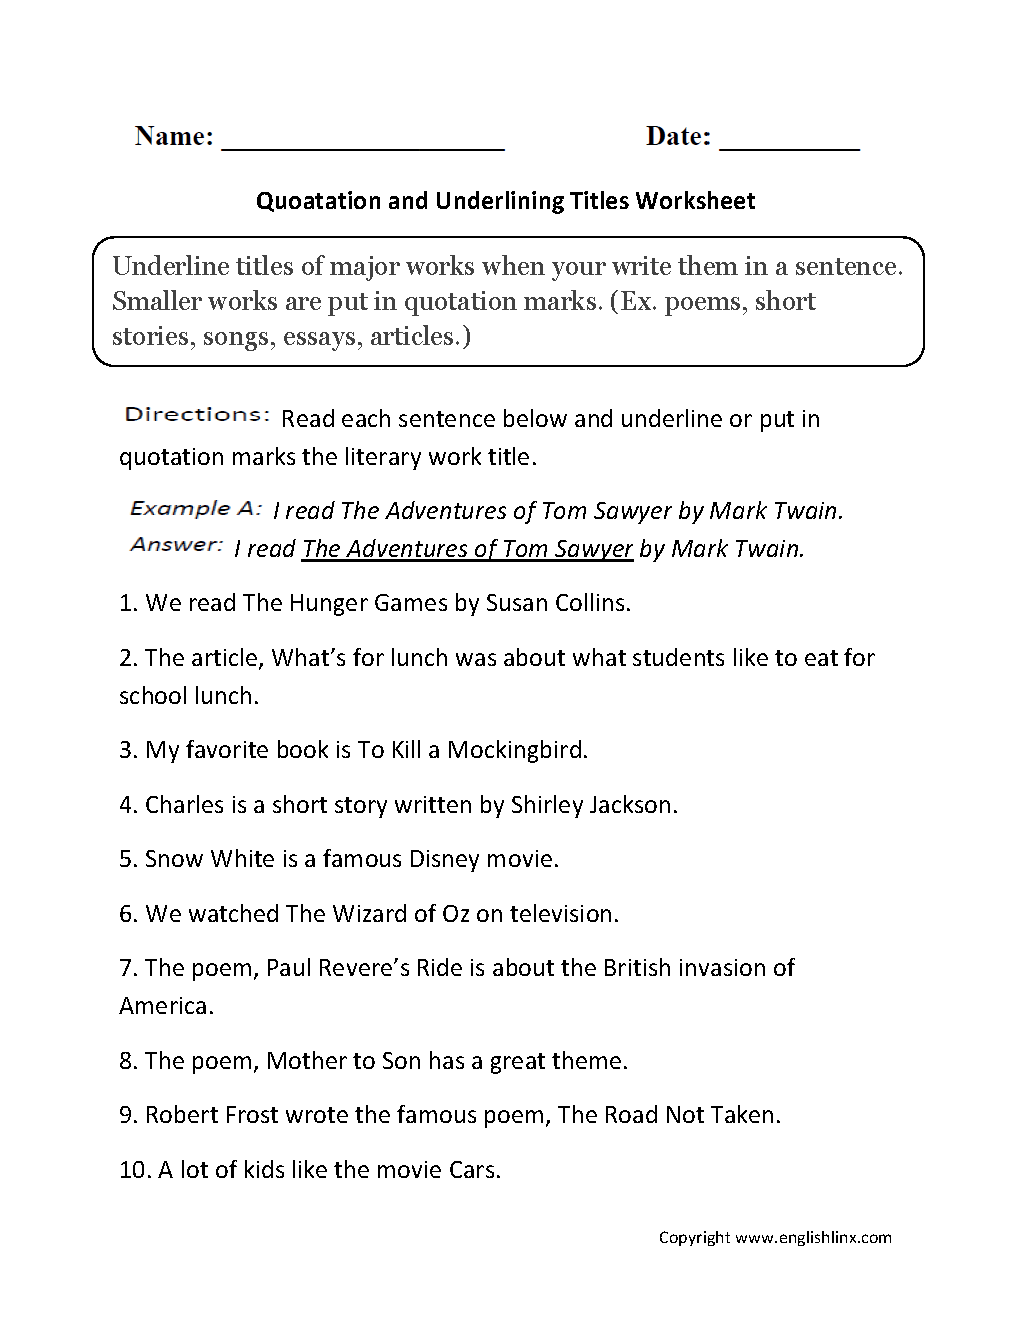 Grammar Mechanics Worksheets – Quotation Worksheet